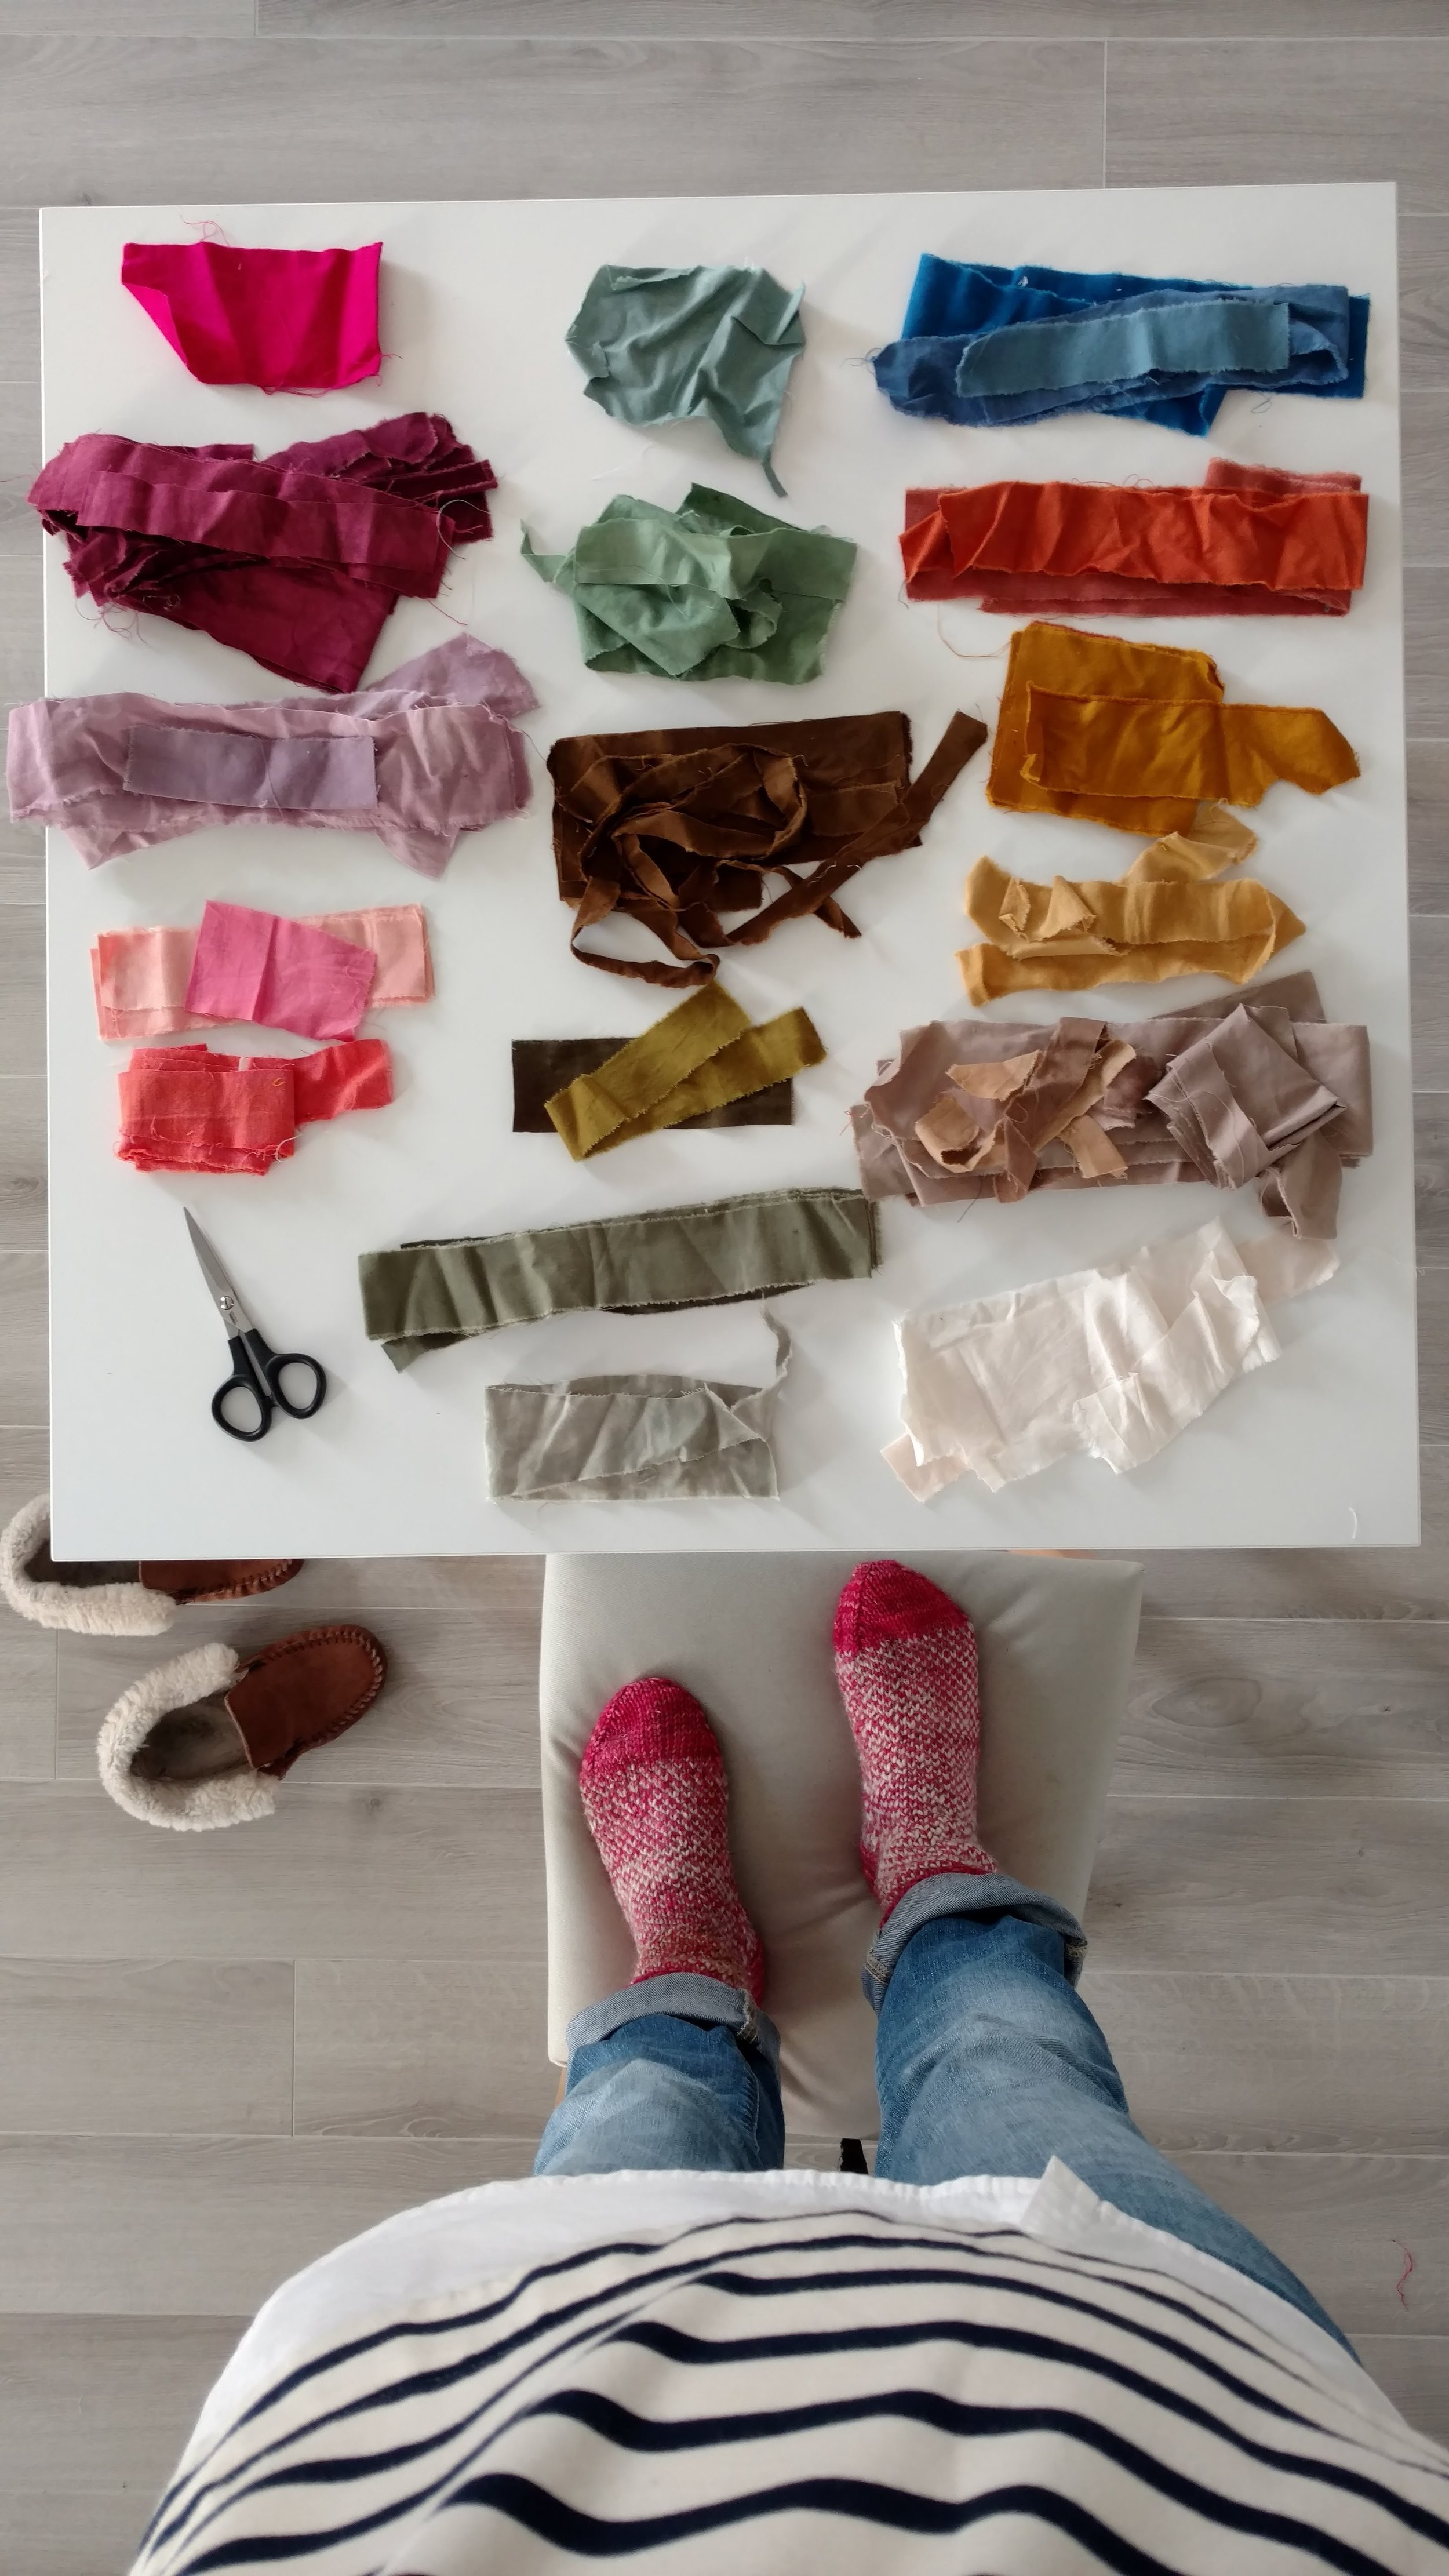 Sorting scraps by color.